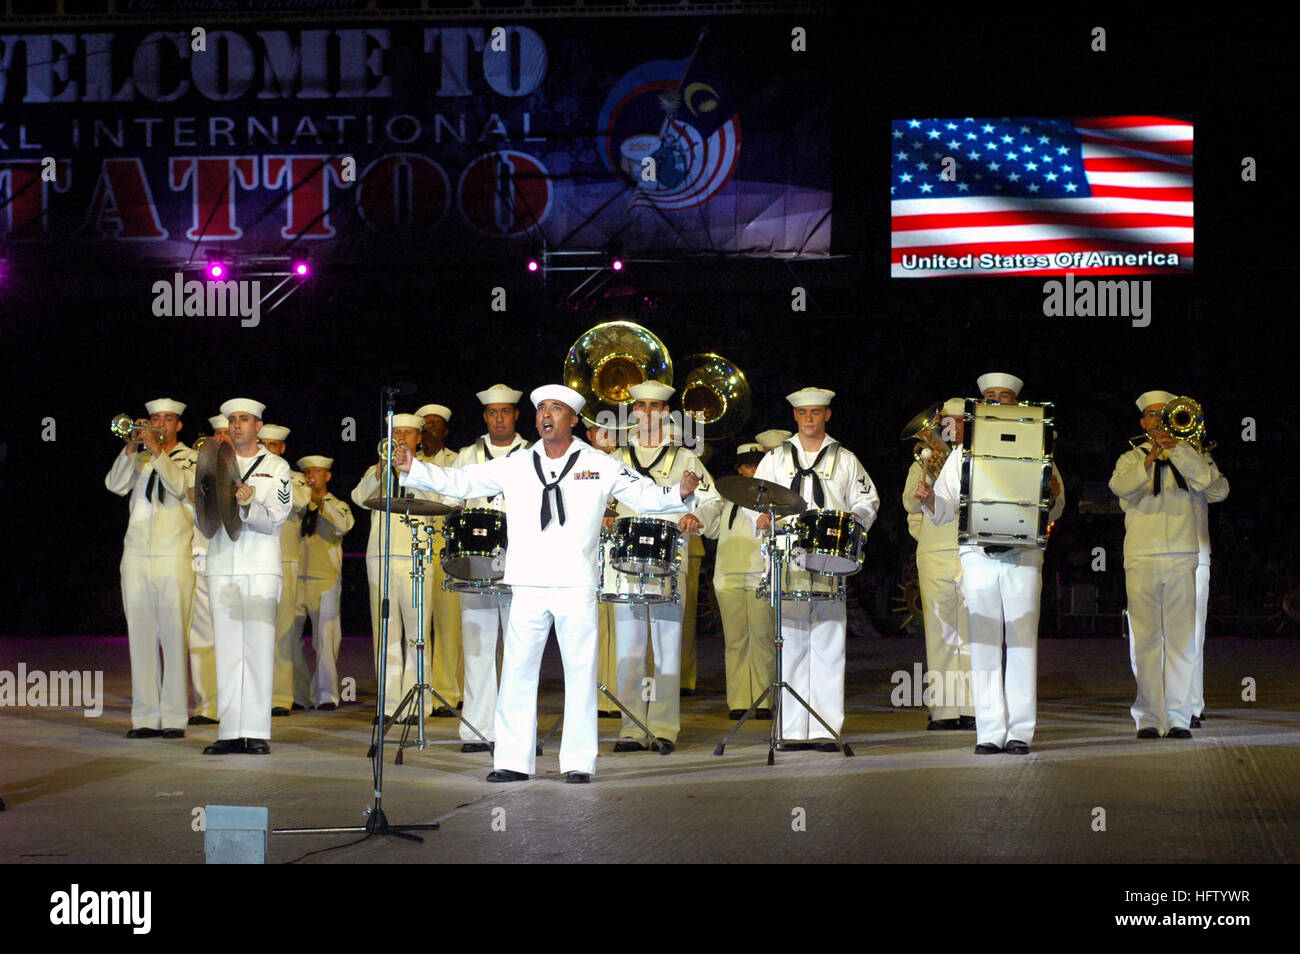 070906-N-5174T-008  KUALA LUMPUR, Malaysia (Sept. 6, 2007) - Sailors attached to the Pacific Fleet Band perform - Stock Image